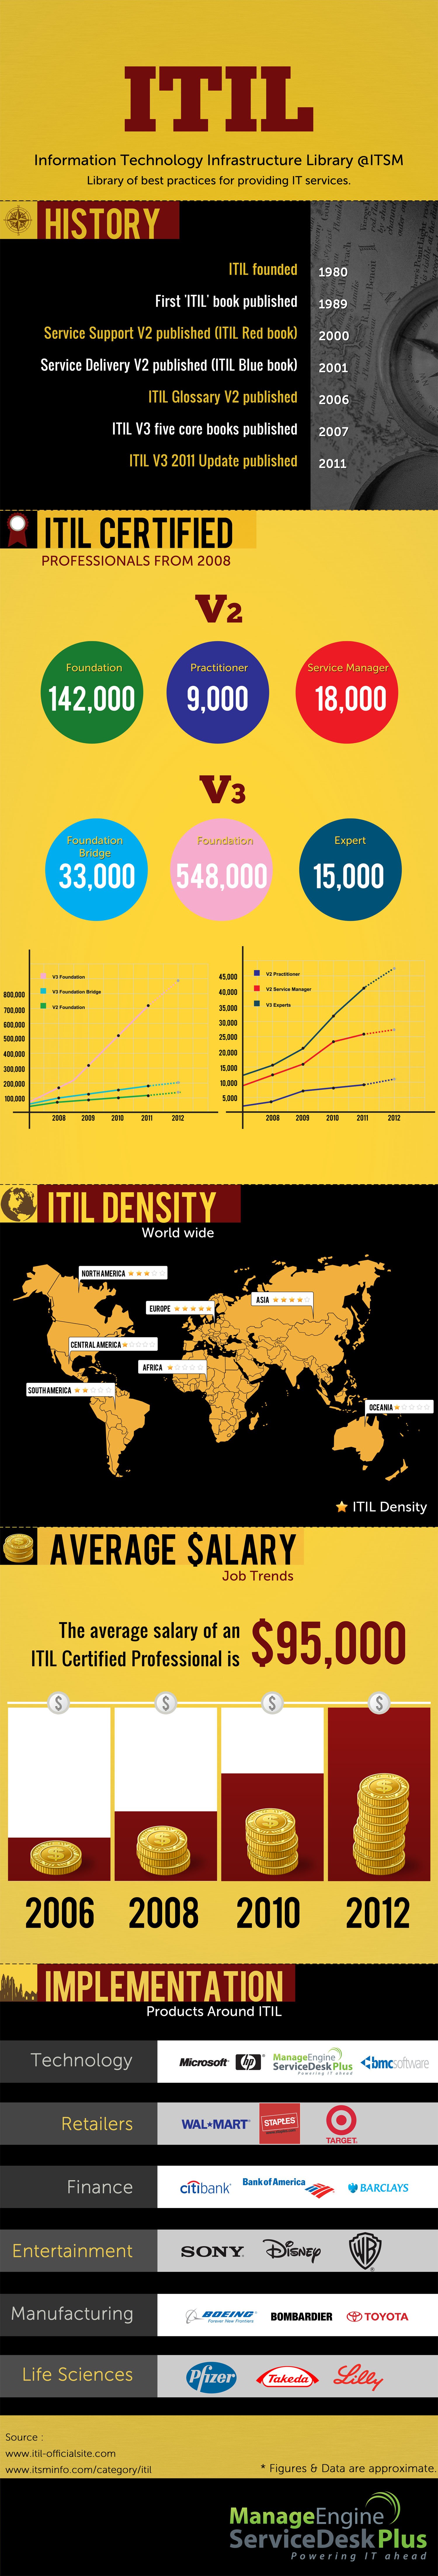 ITIL-Infographic